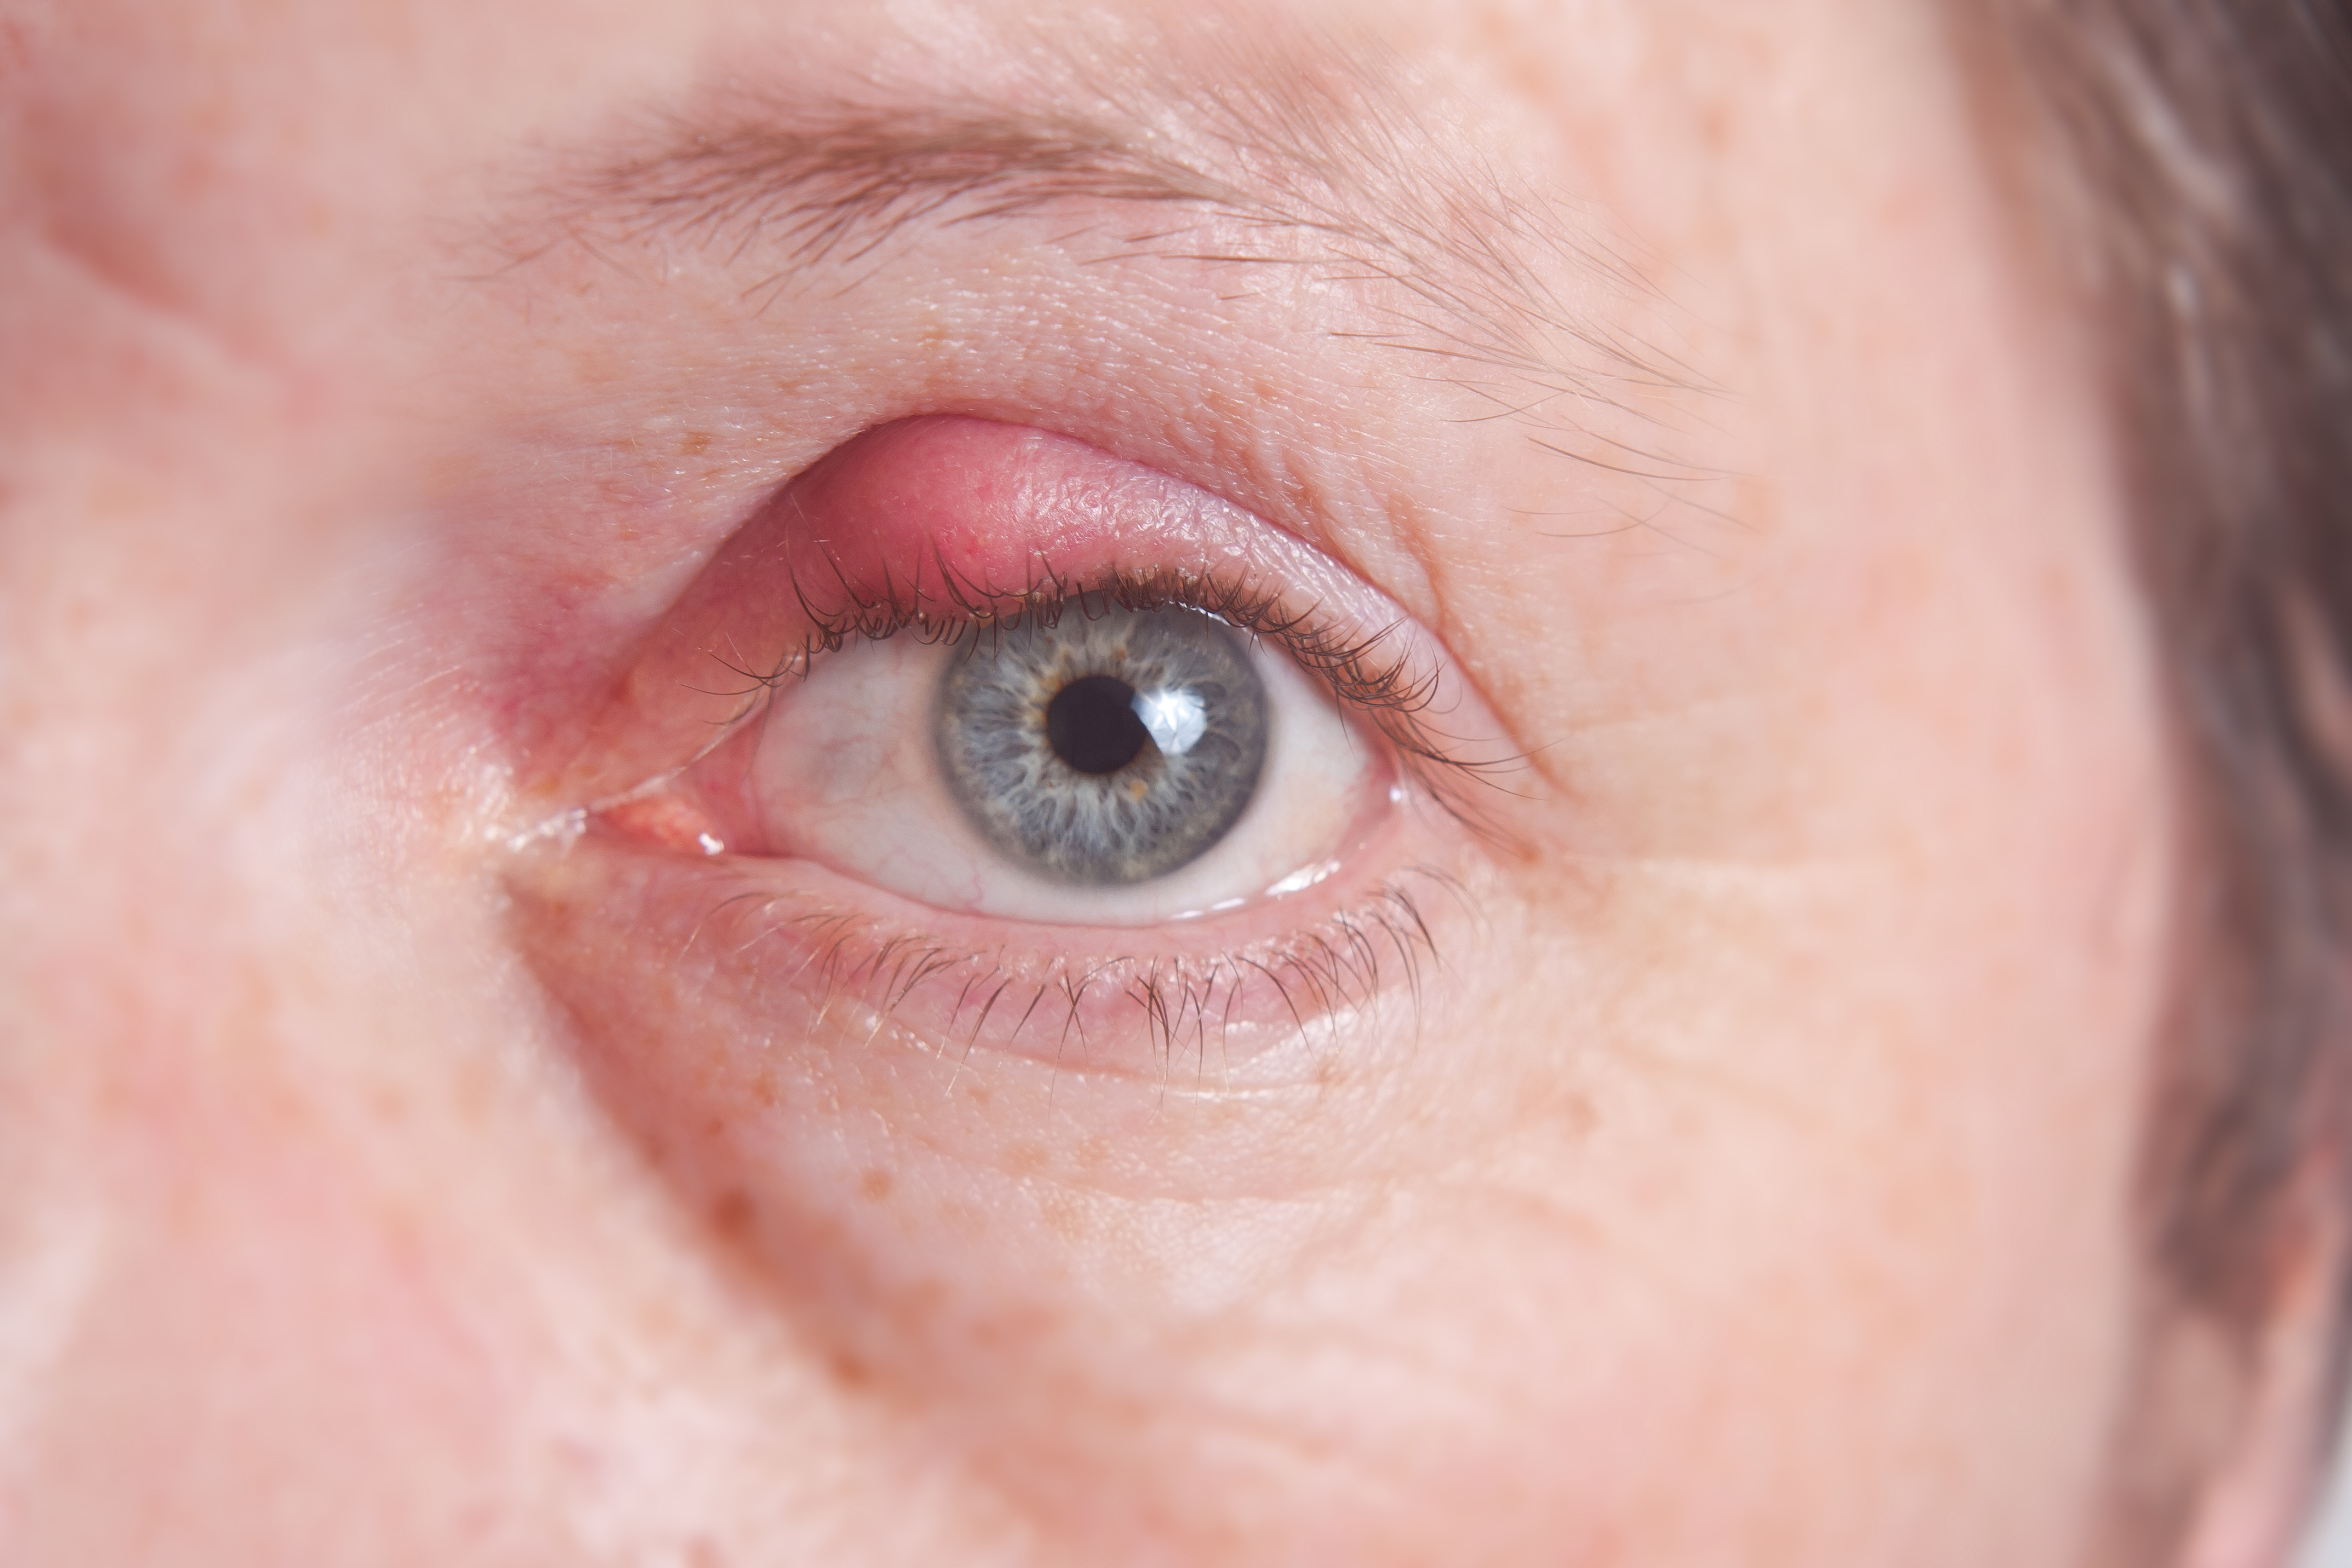 Expert suggested ways to prevent eye pimple or stye